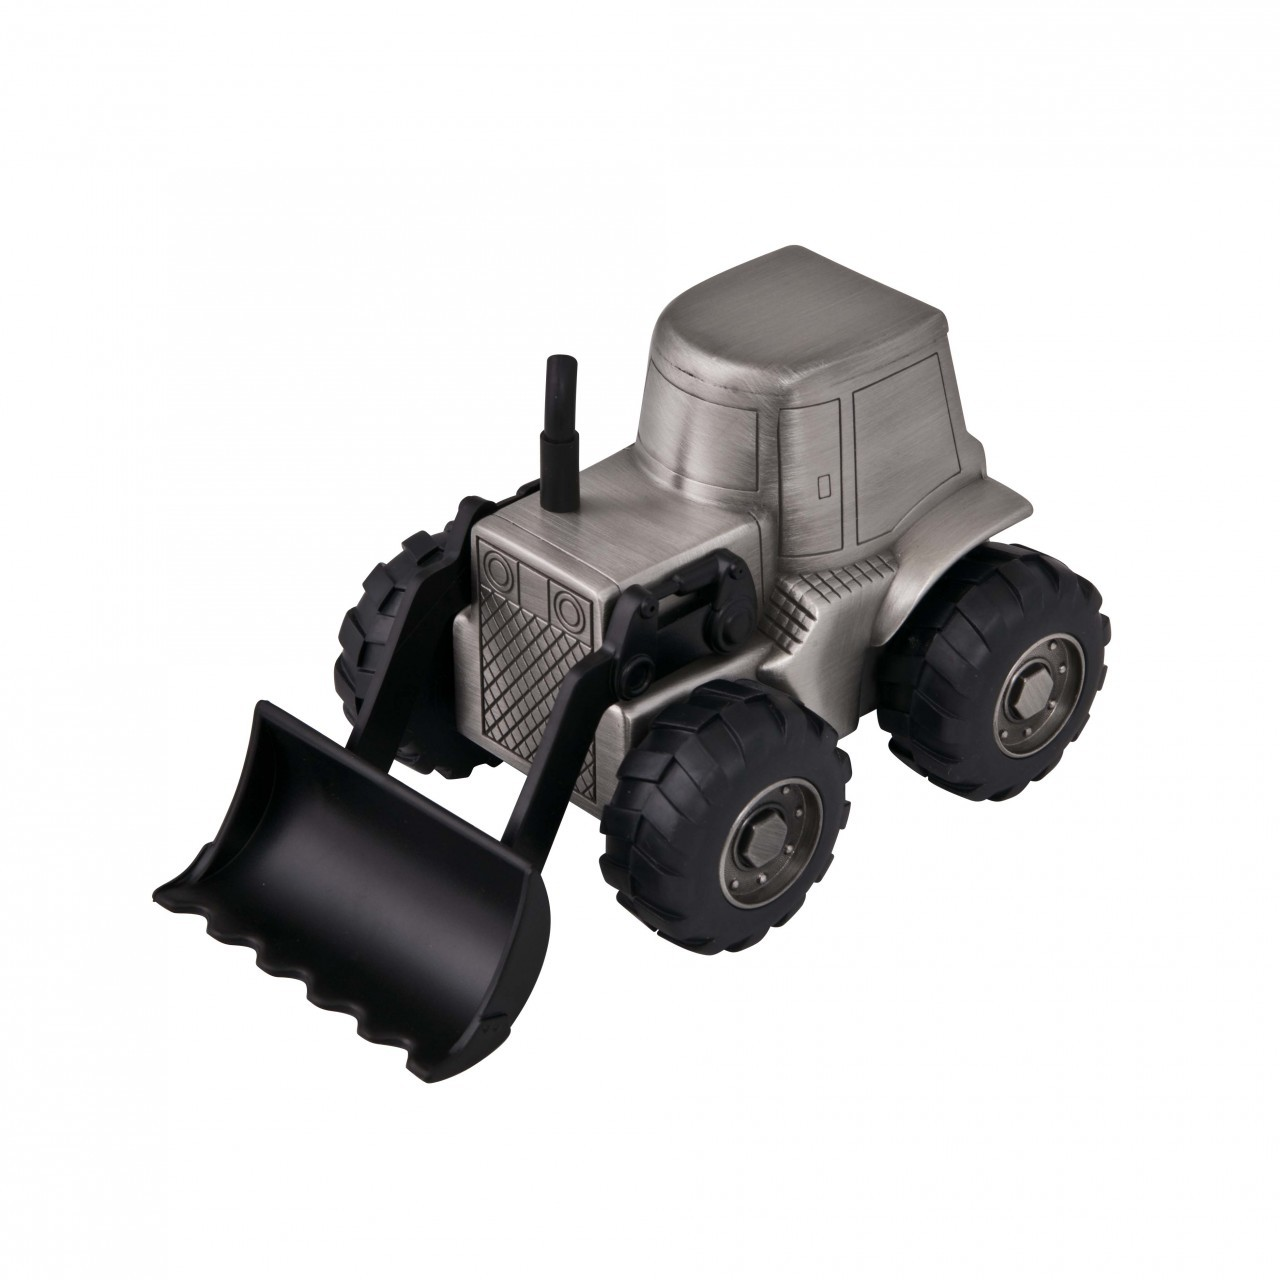 FRONT END LOADER TRACTOR MONEY BOX, PEWTER FINISH